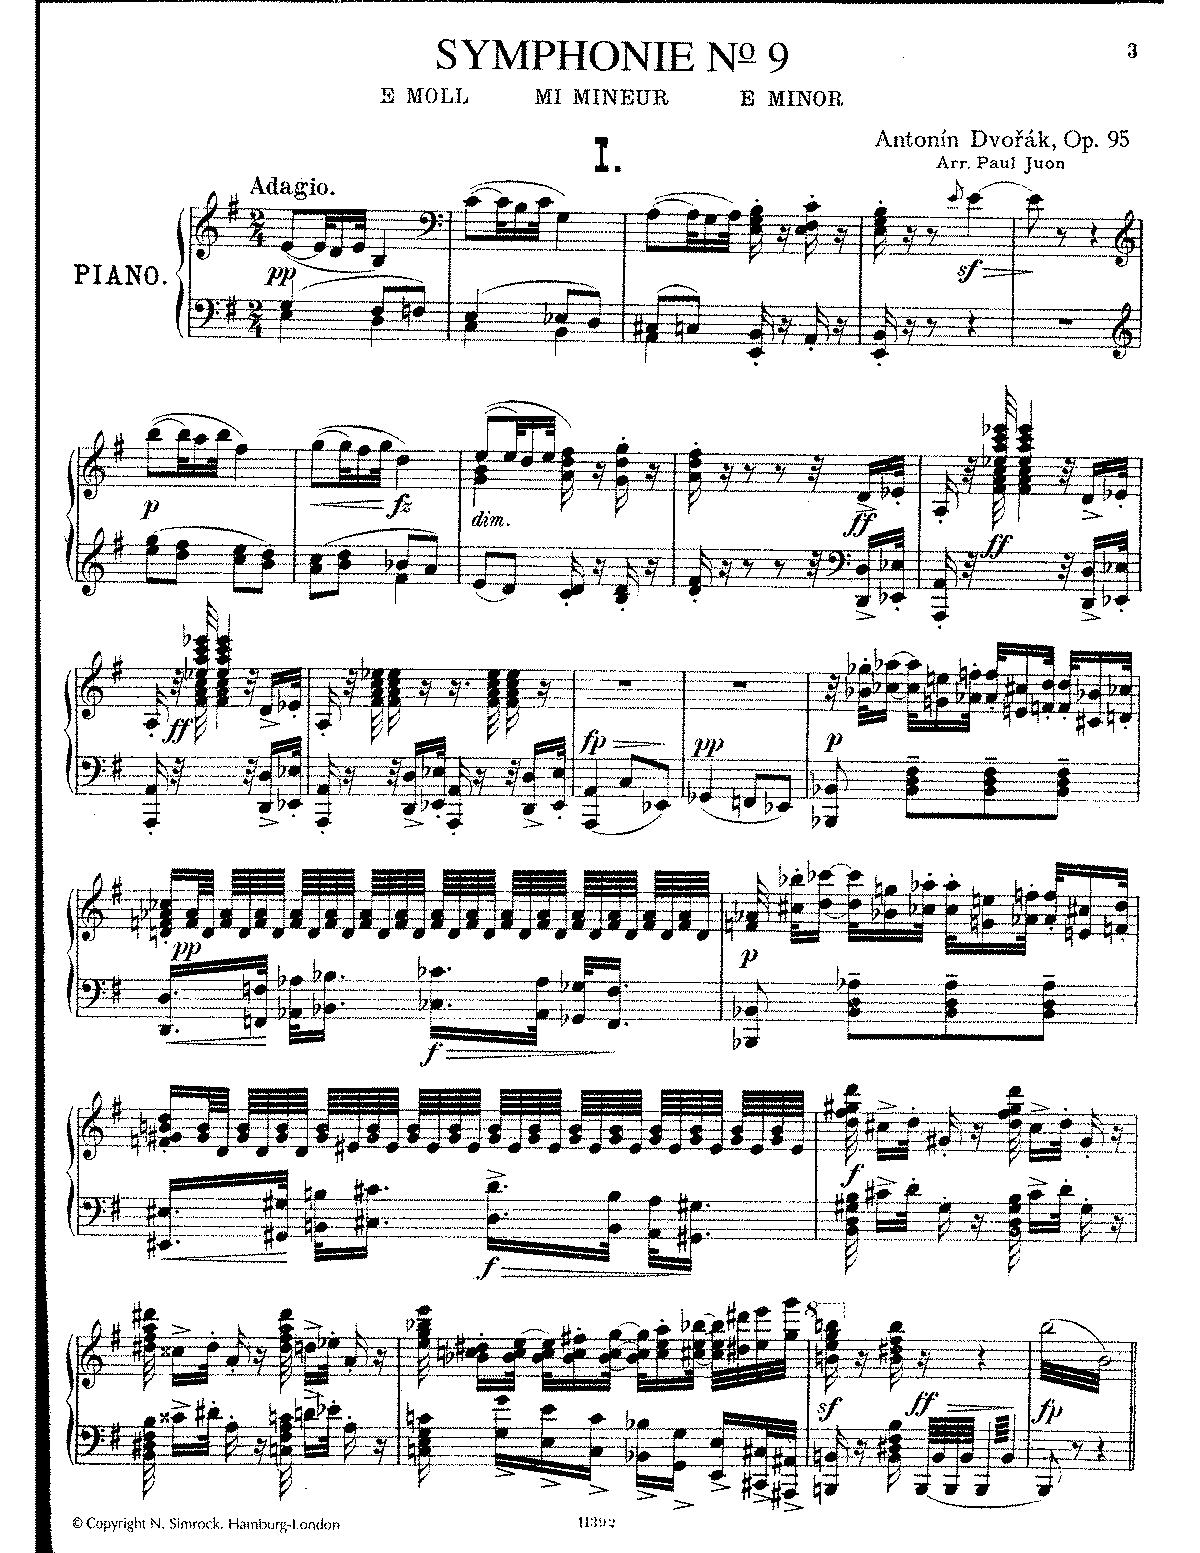 Dvorak-Juon op95 Symphony 9 — From the New World (piano solo).pdf